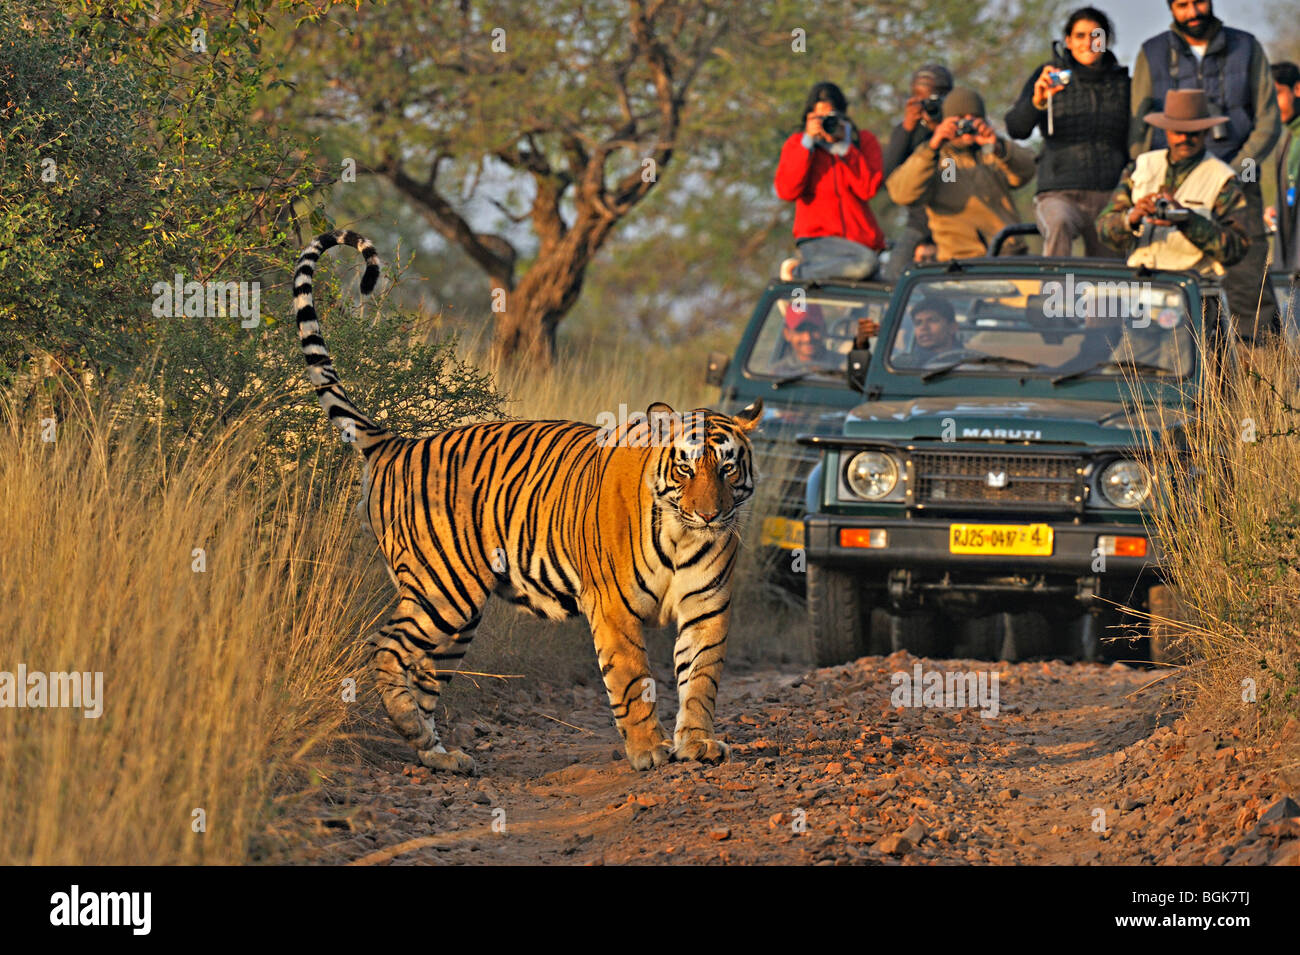 Tourist vehicles following a tiger on a tiger safari in Ranthambhore tiger reserve - Stock Image